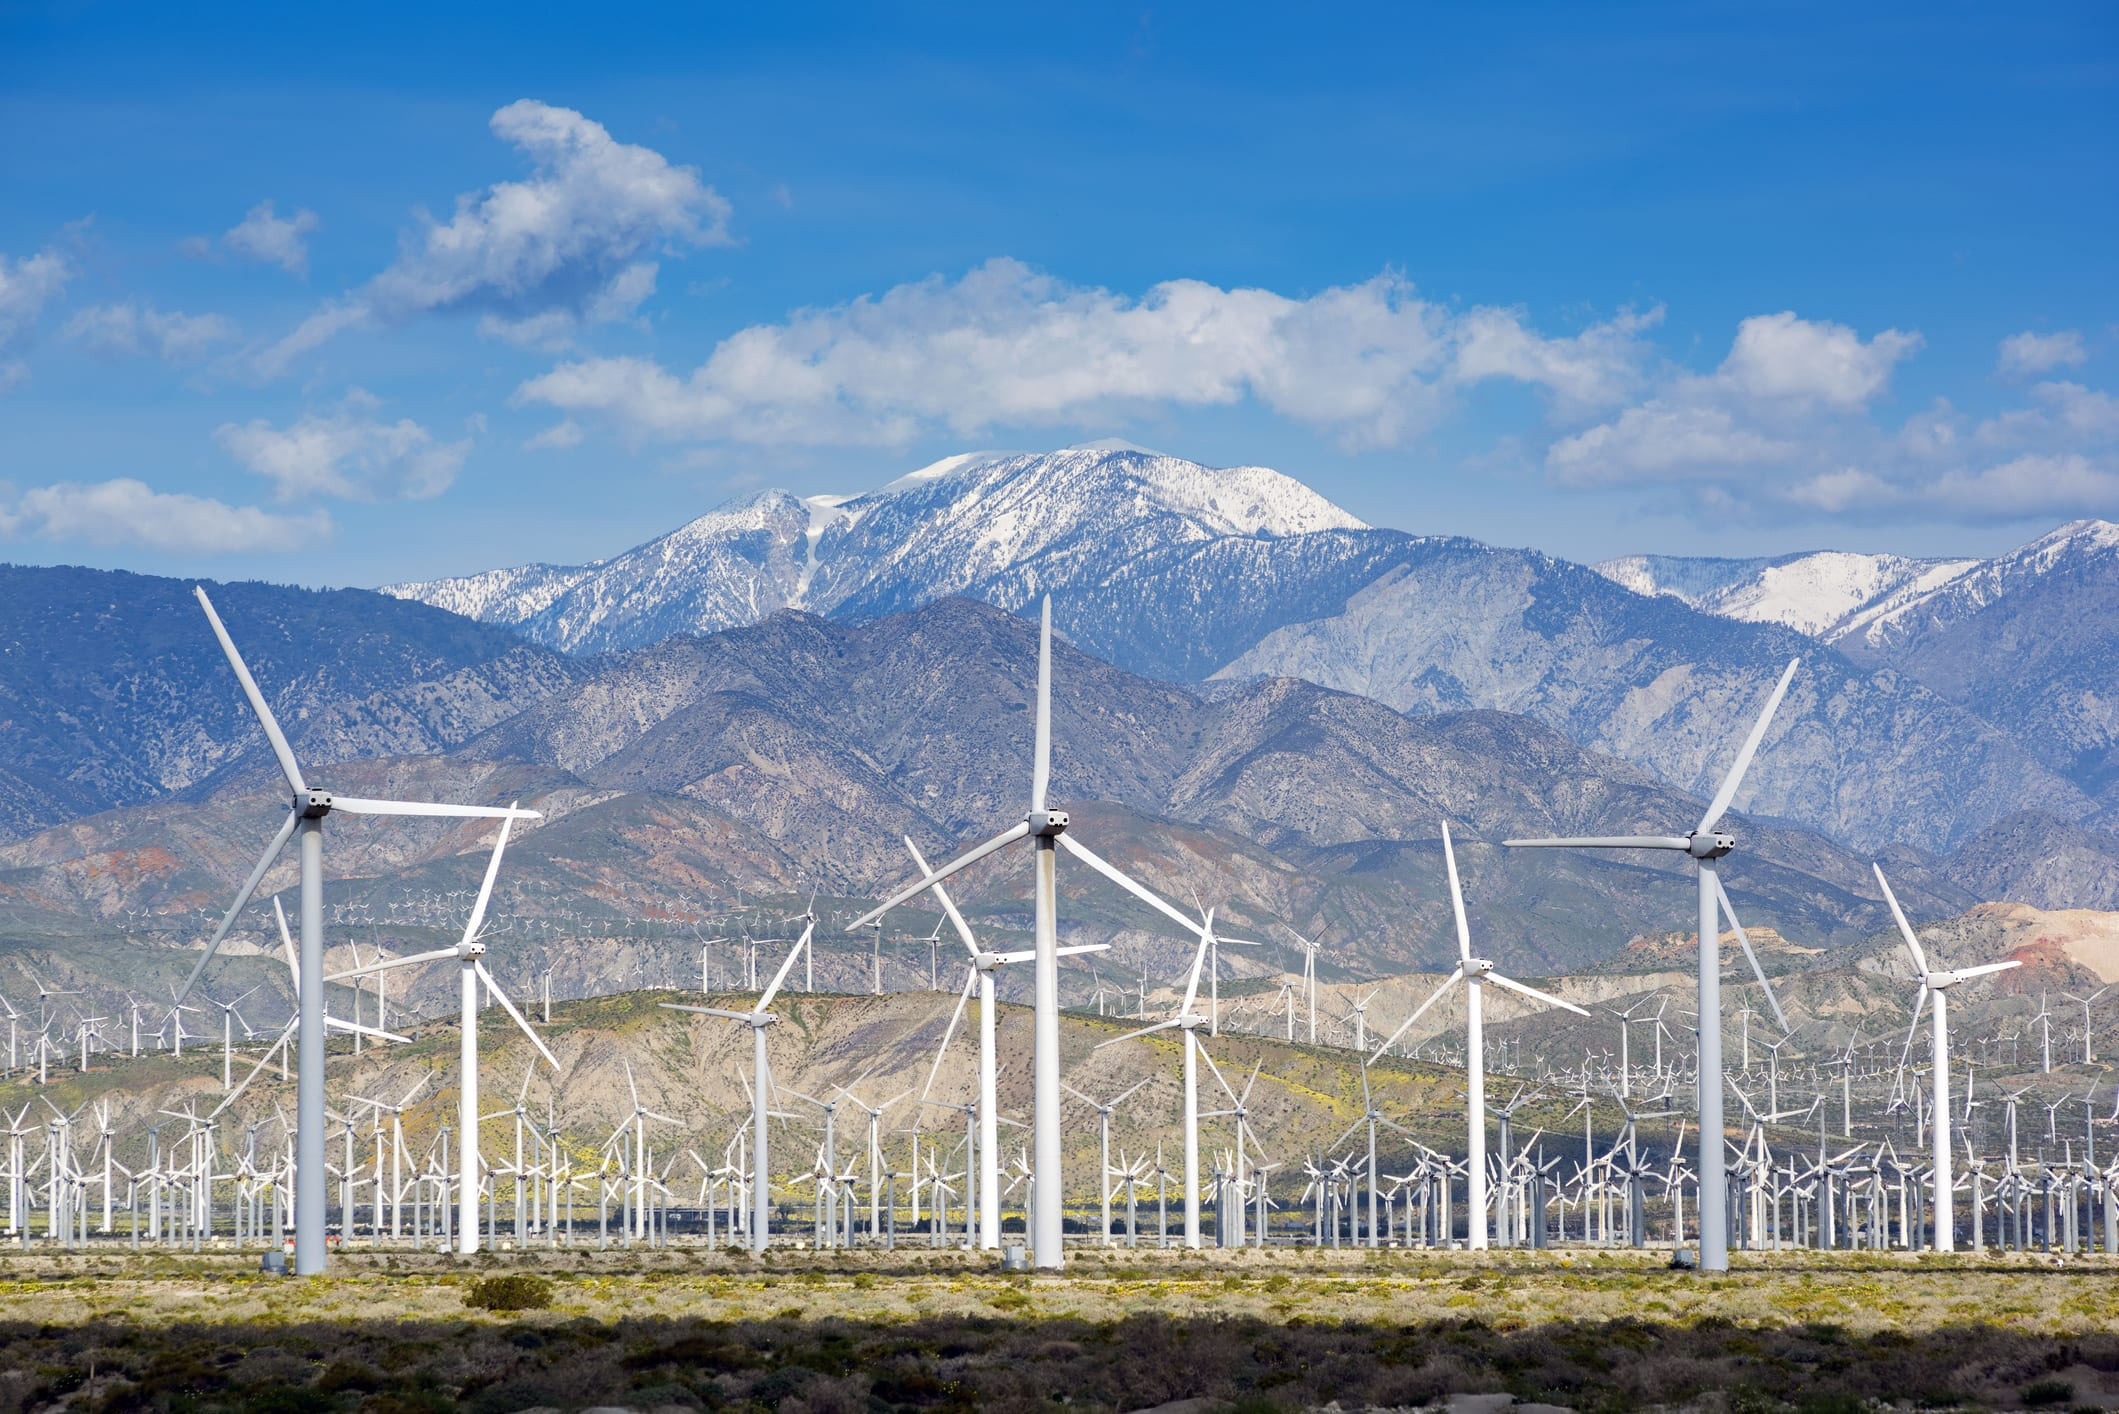 US wind energy capacity is now more than 100 gigawatts, according to new report